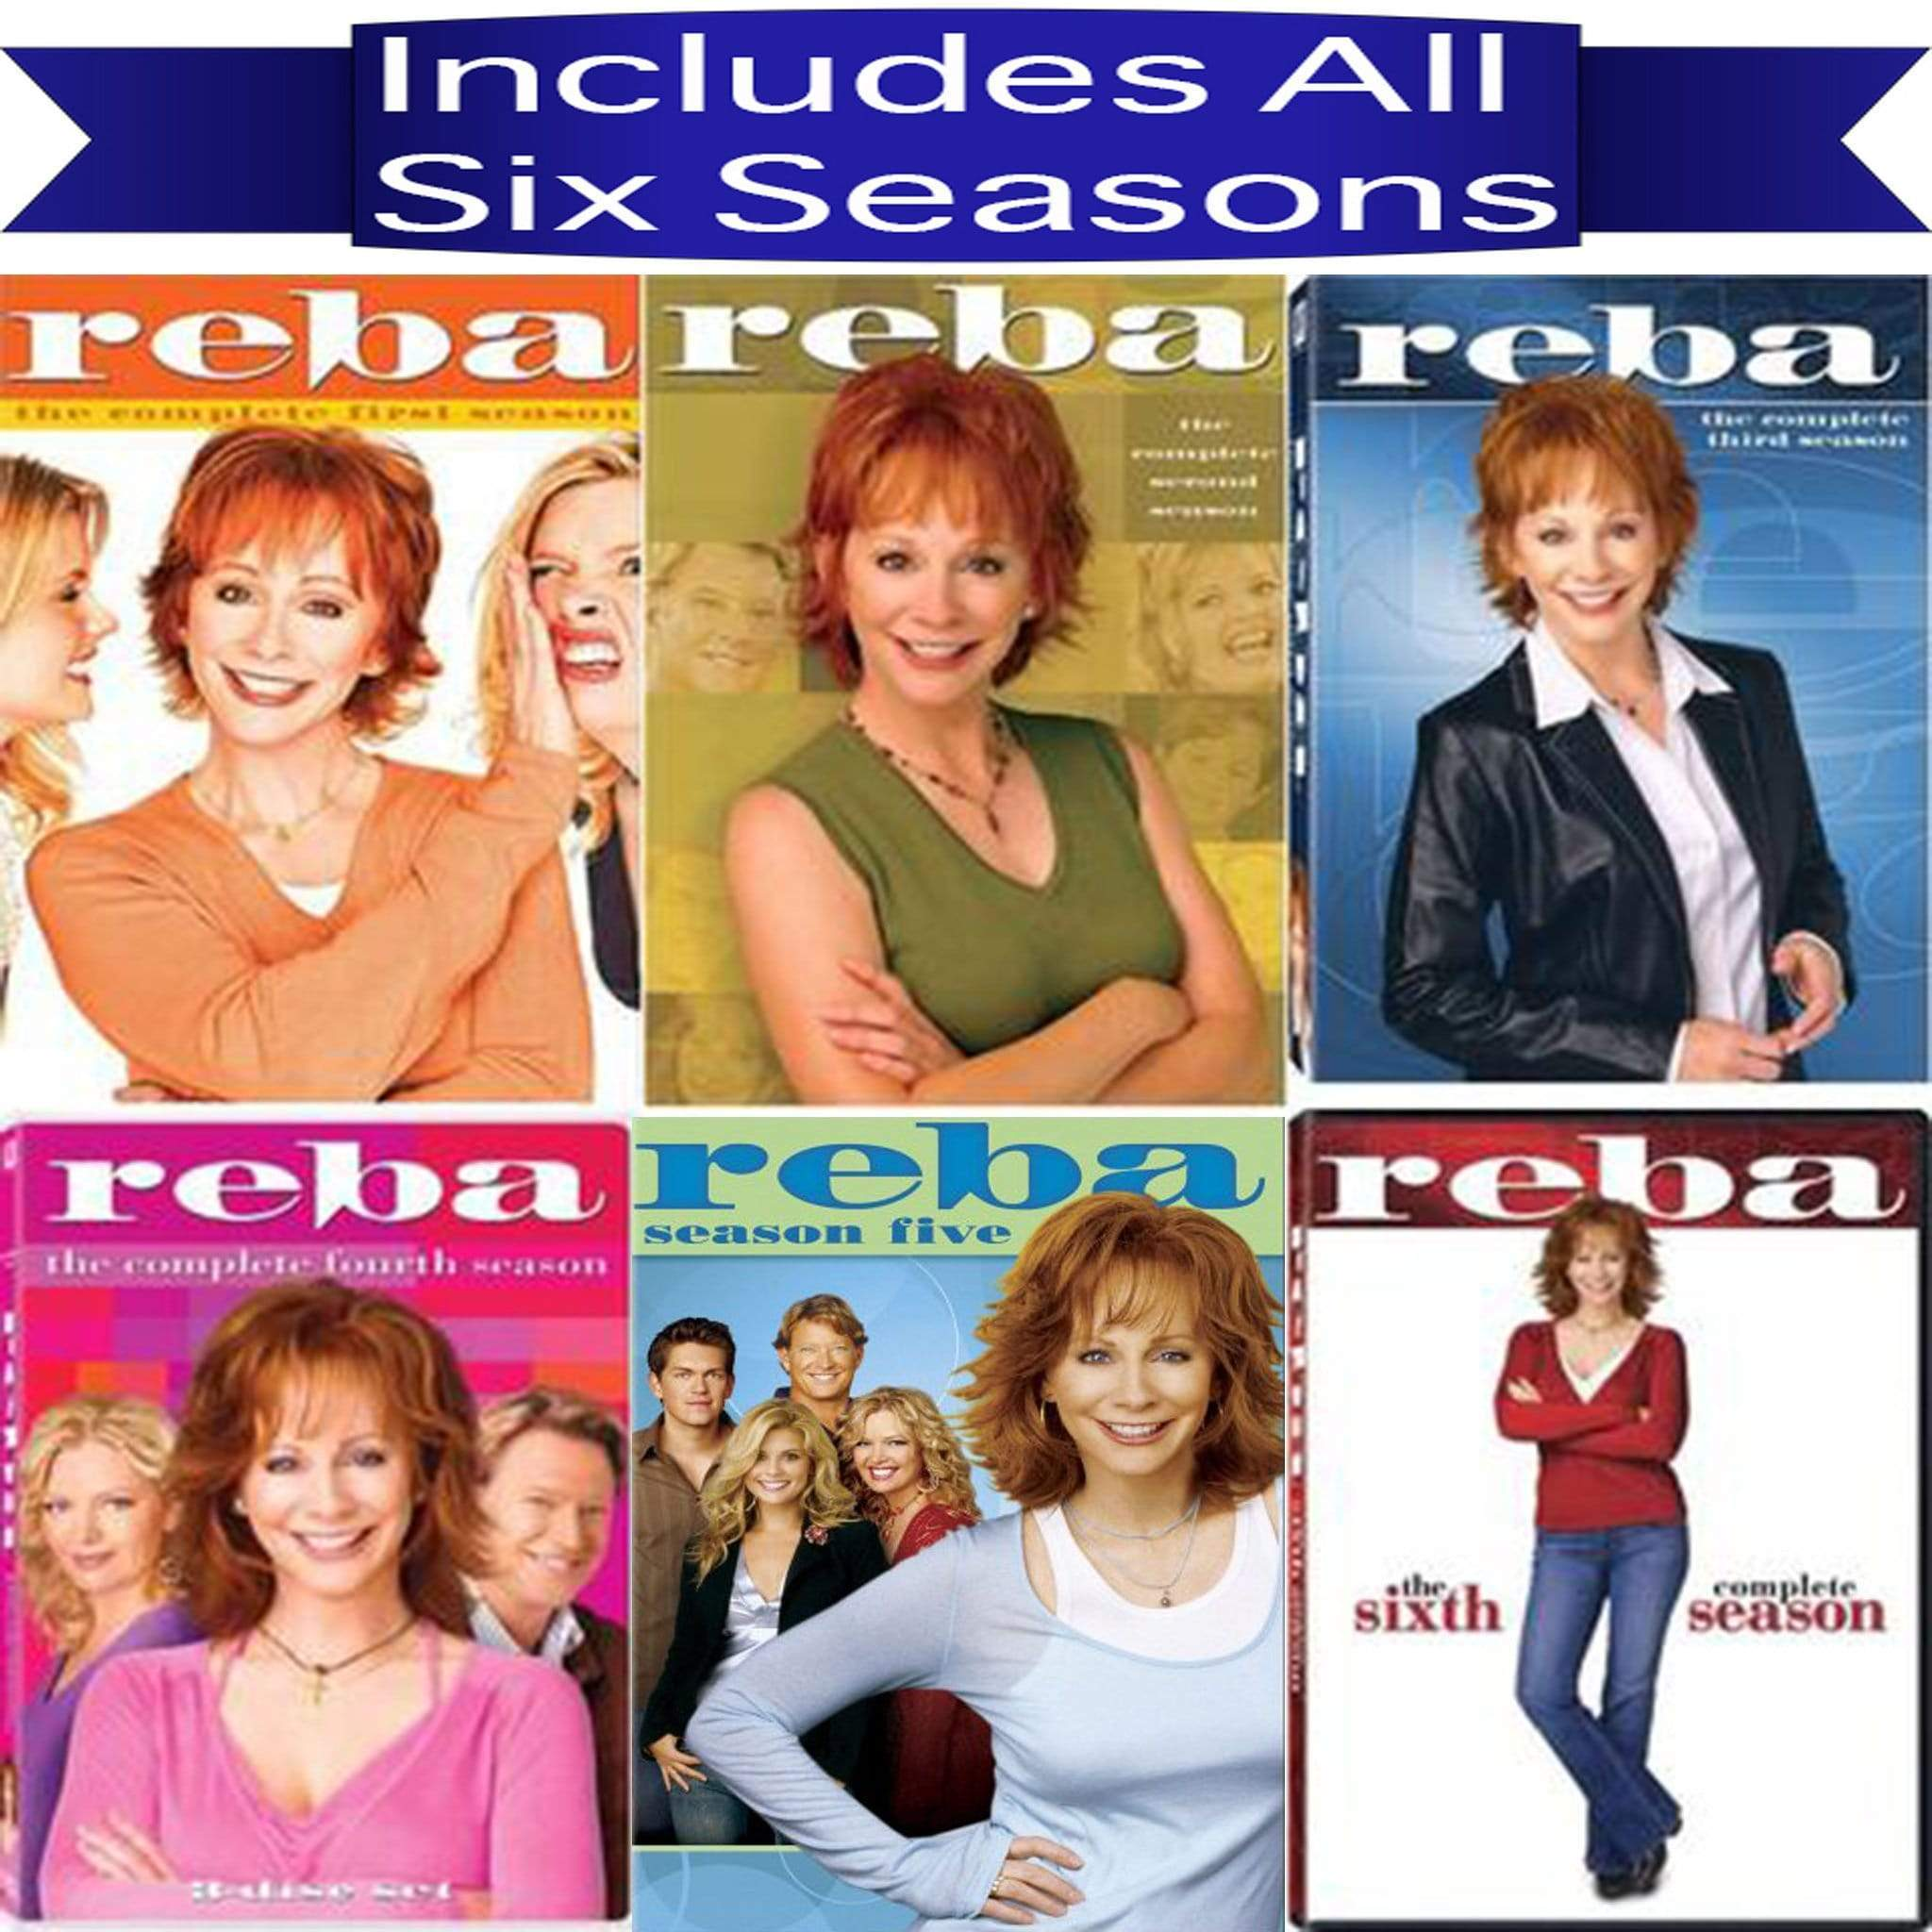 Reba DVD Seasons 1-6 Complete Series Set 20th Century Fox DVDs & Blu-ray Discs > DVDs > Box Sets